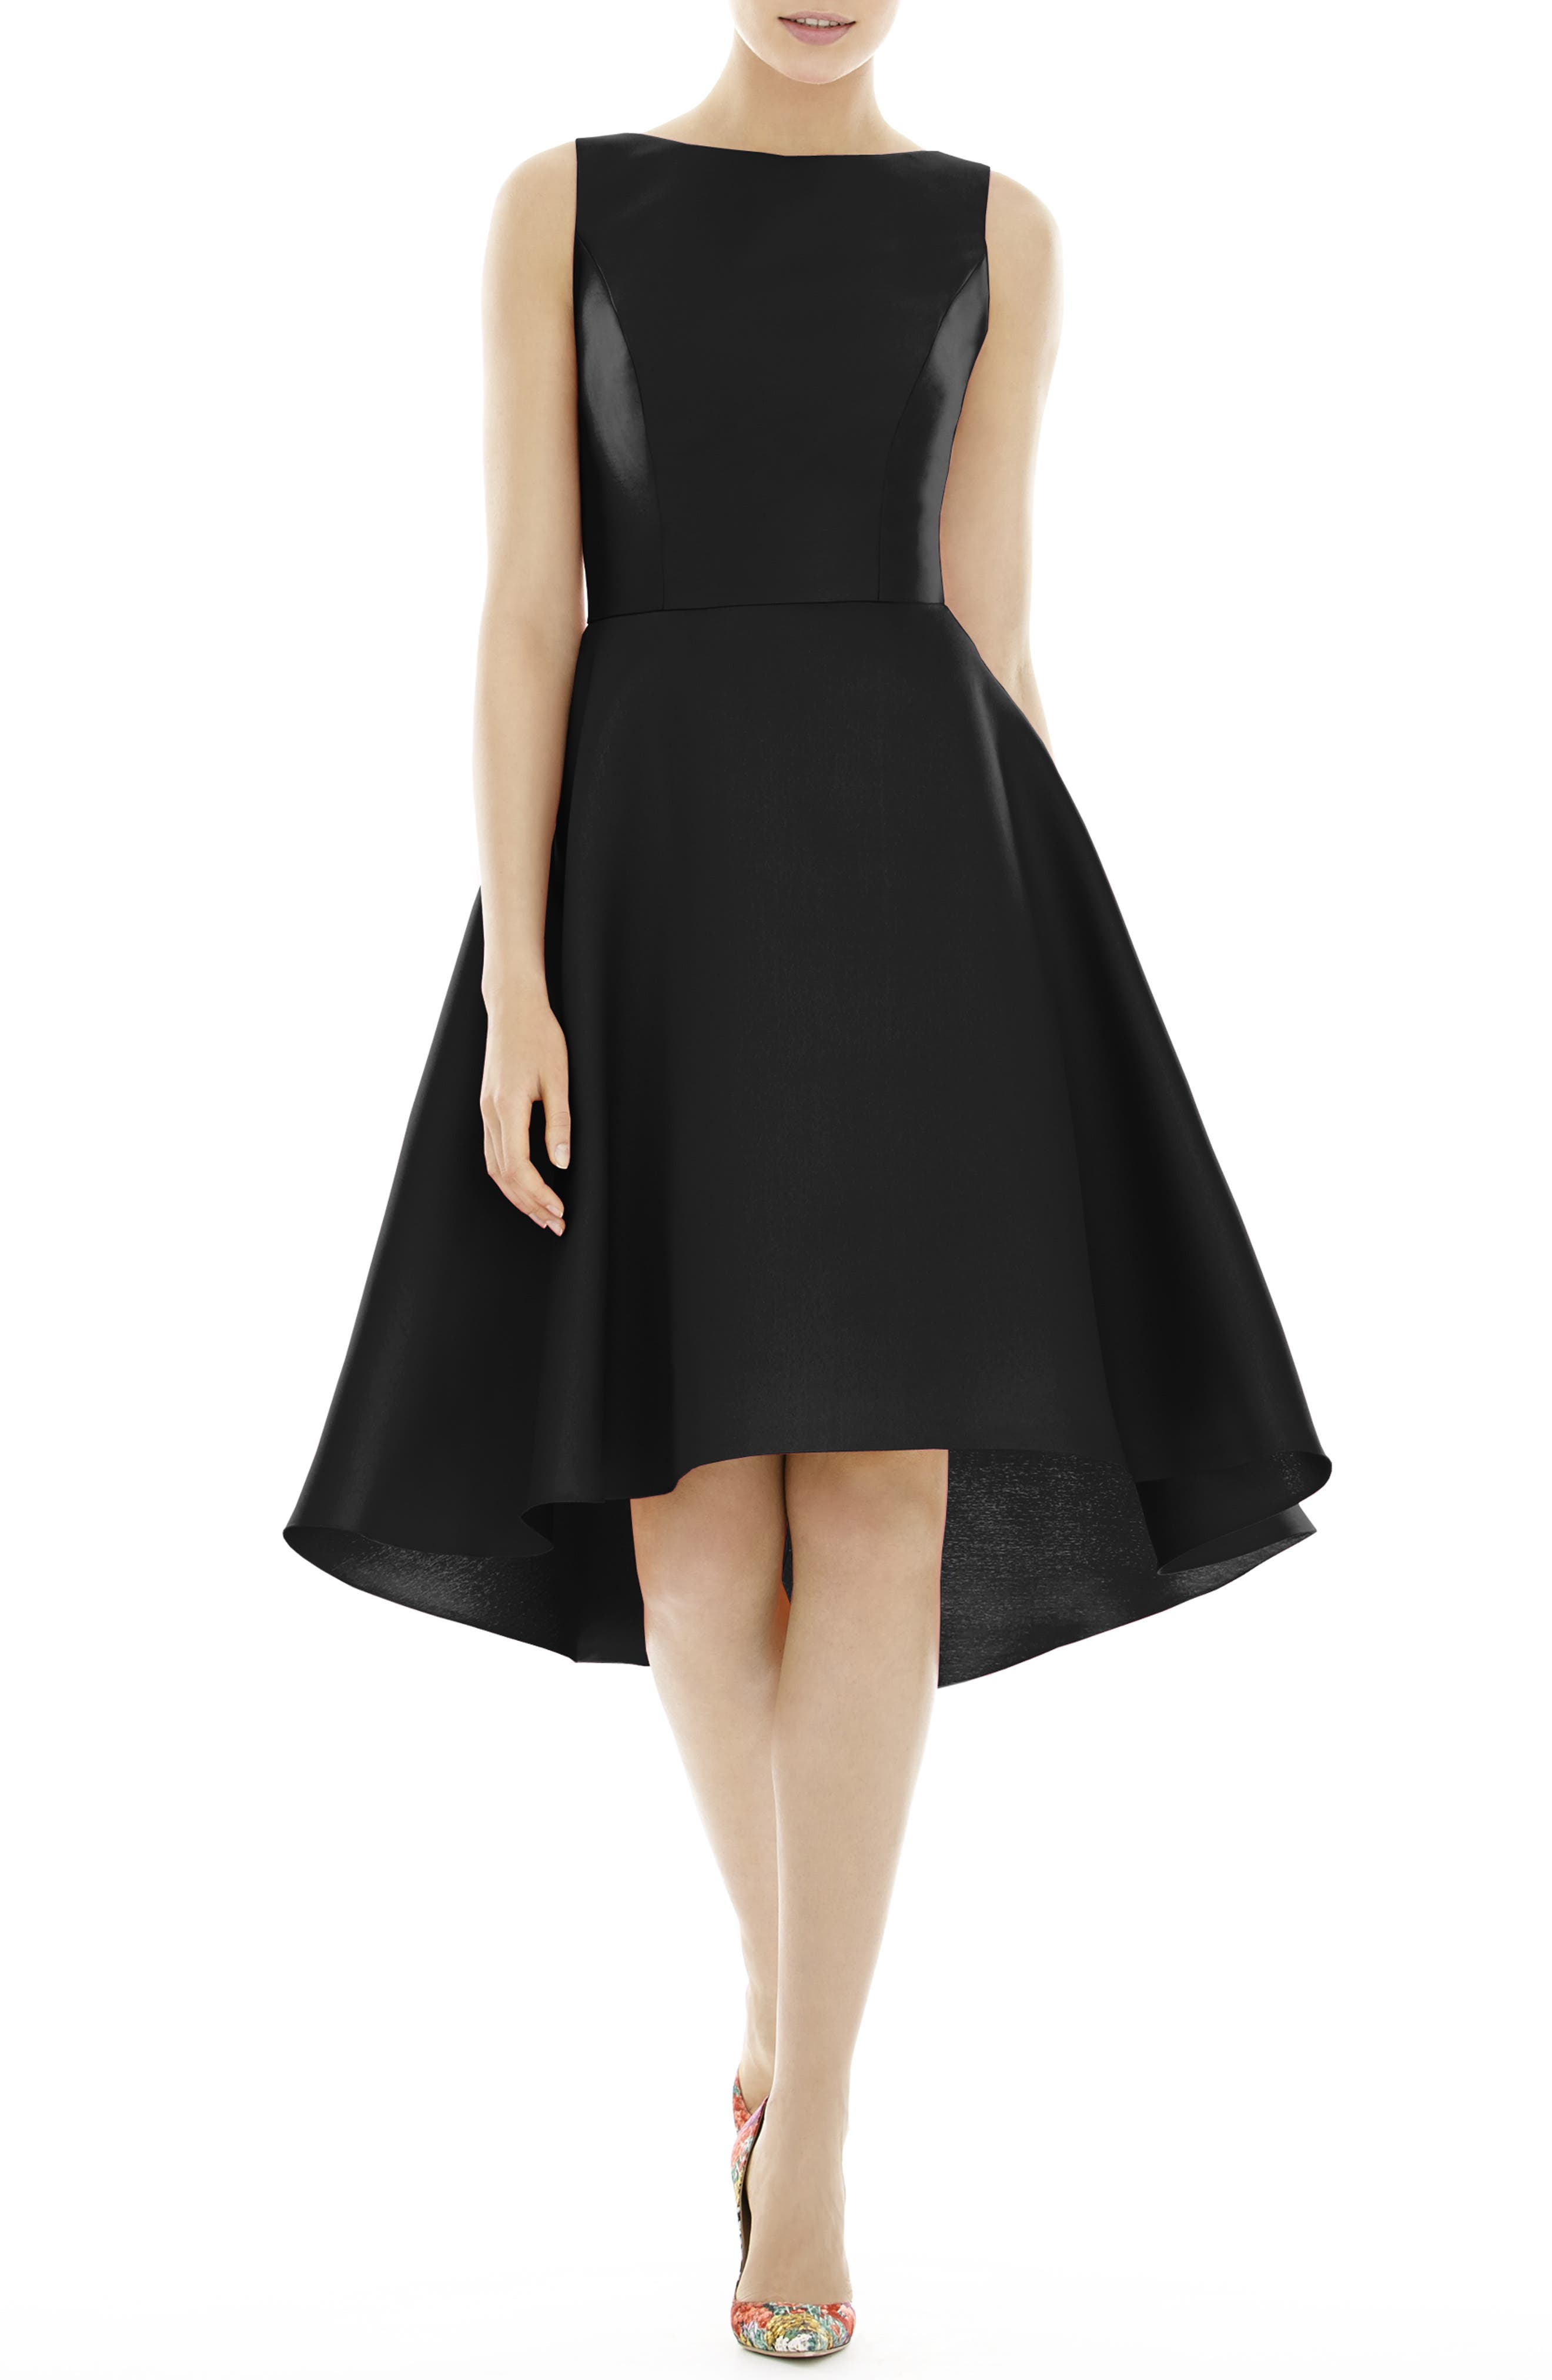 ALFRED SUNG, High/Low Satin Twill Cocktail Dress, Main thumbnail 1, color, BLACK